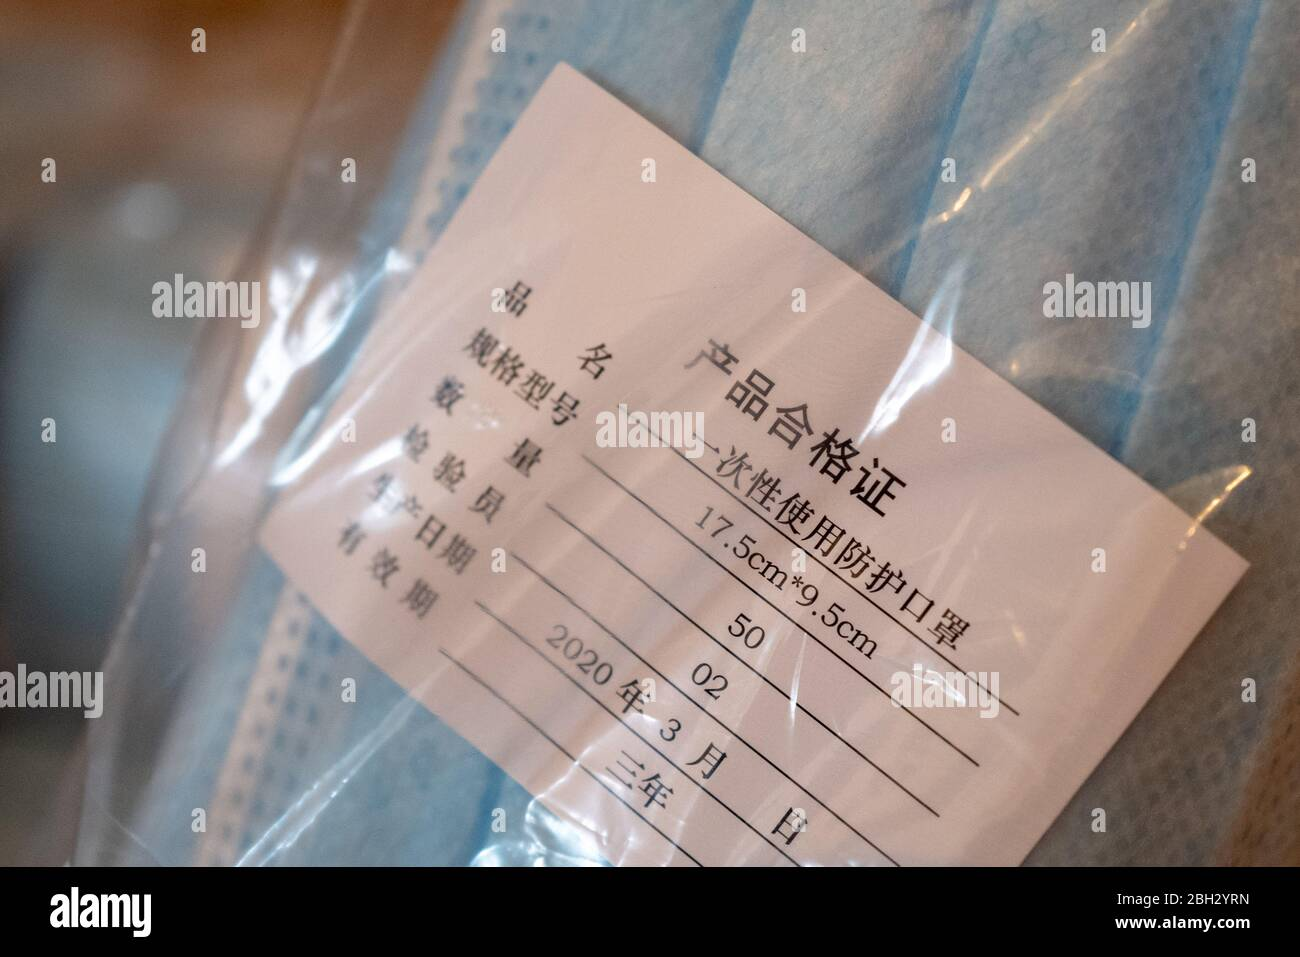 Close-up of a cardboard box filled with packaged blue surgical masks imported from China during an outbreak of the COVID-19 coronavirus in San Ramon, California, April 5, 2020. () Stock Photo